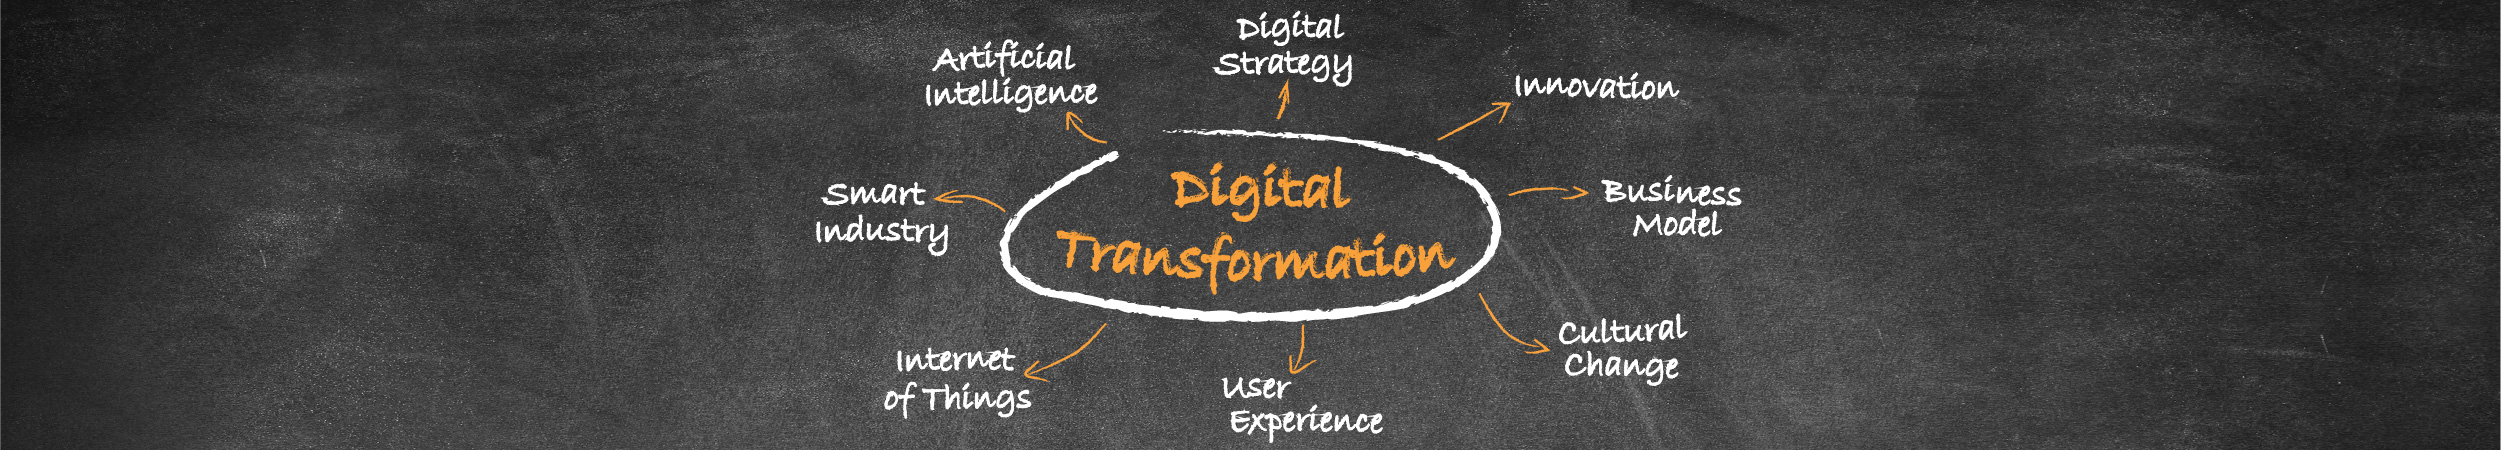 slide_academy_curriculum_digital_transformation2